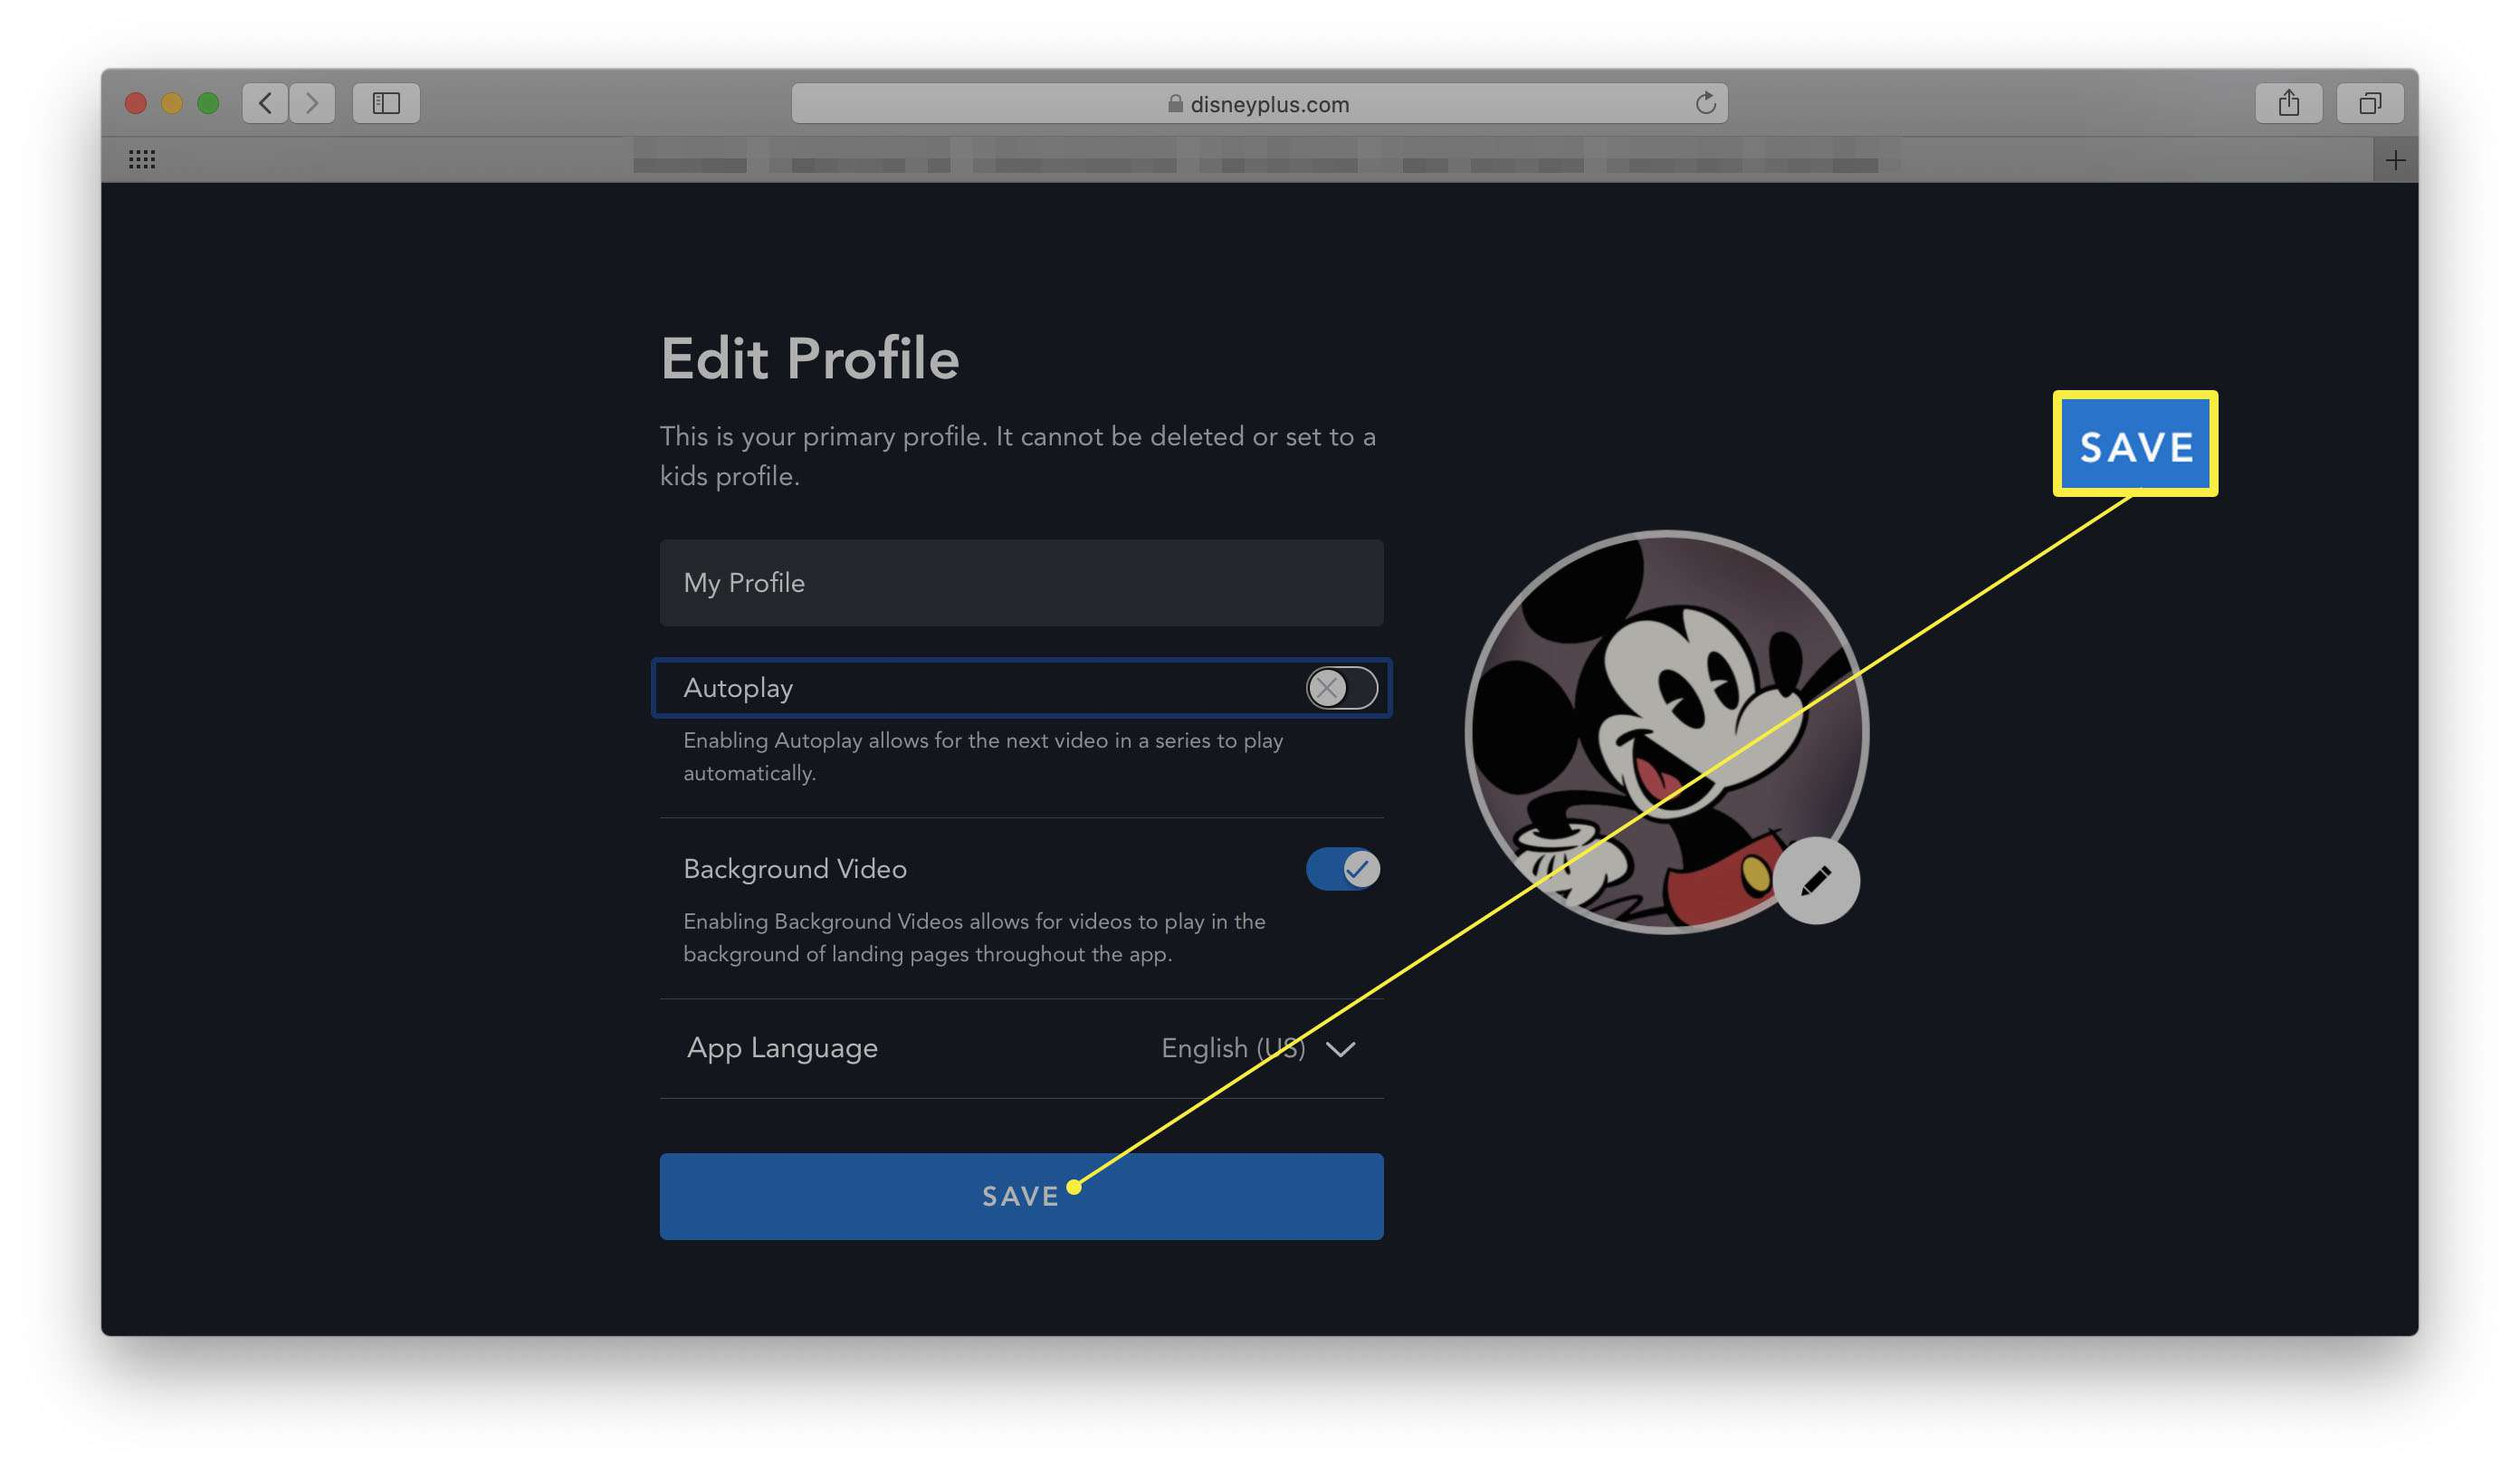 Disney+ with Edit Profile open and Save highlighted